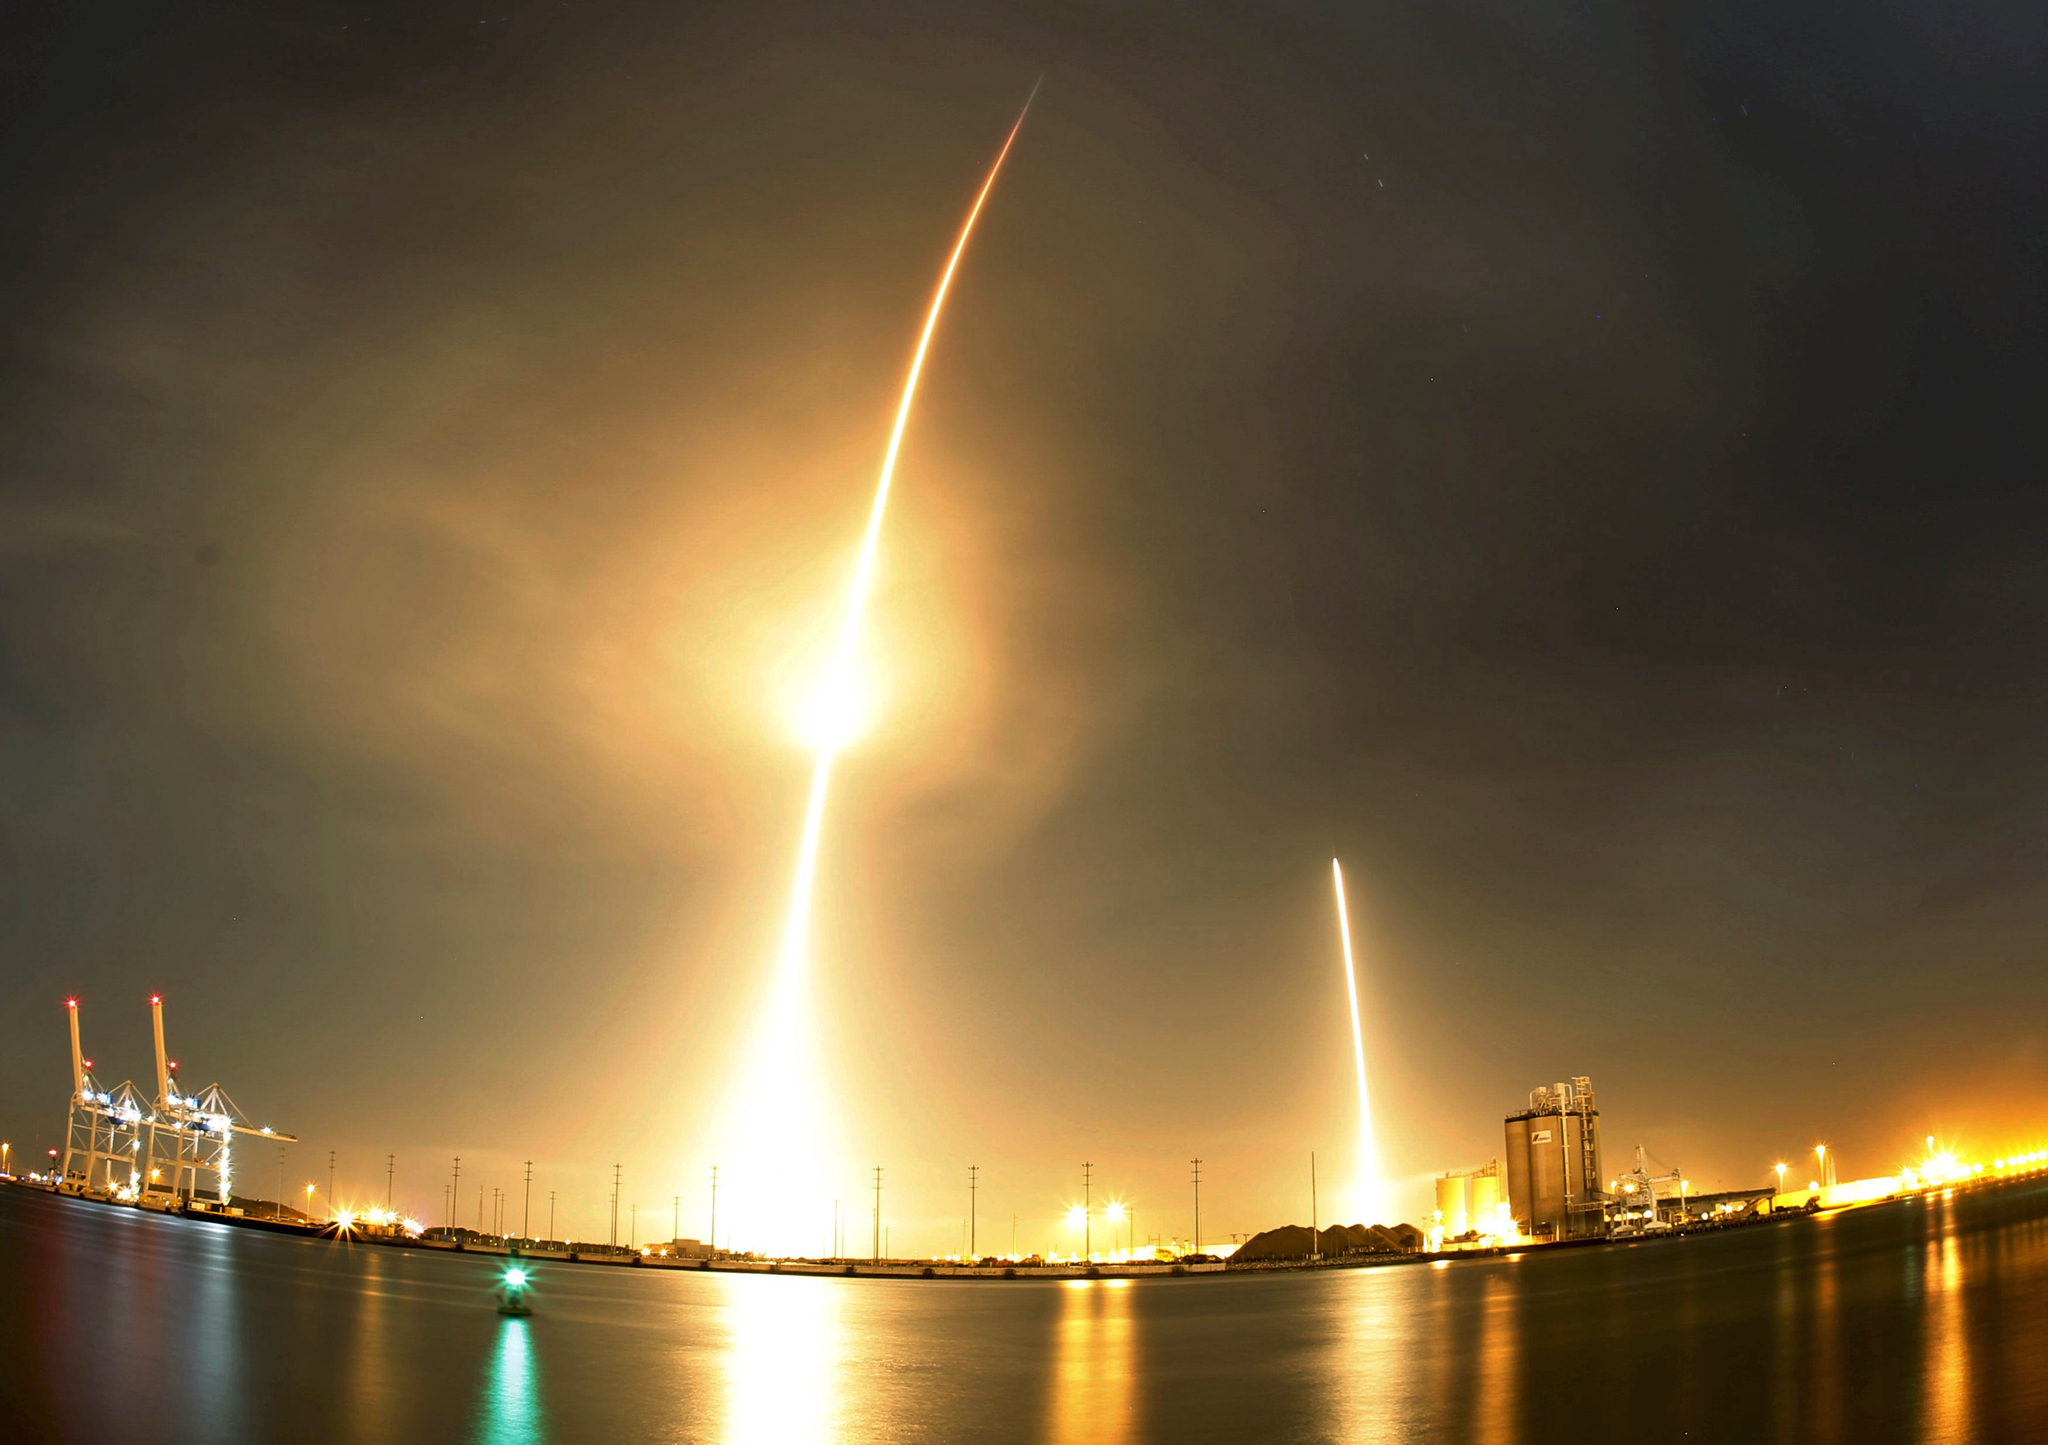 A long exposure photograph shows the SpaceX Falcon 9 lifting off (L) from its launch pad and then returning to a landing zone (R) at the Cape Canaveral Air Force Station, on the launcher's first mission since a June failure, in Cape Canaveral, Florida, December 21, 2015. The rocket carried a payload of eleven satellites owned by Orbcomm, a New Jersey-based communications company. This long exposure photograph was made by covering the lens in between liftoff and landing. REUTERS/Mike Brown   TPX IMAGES OF THE DAY